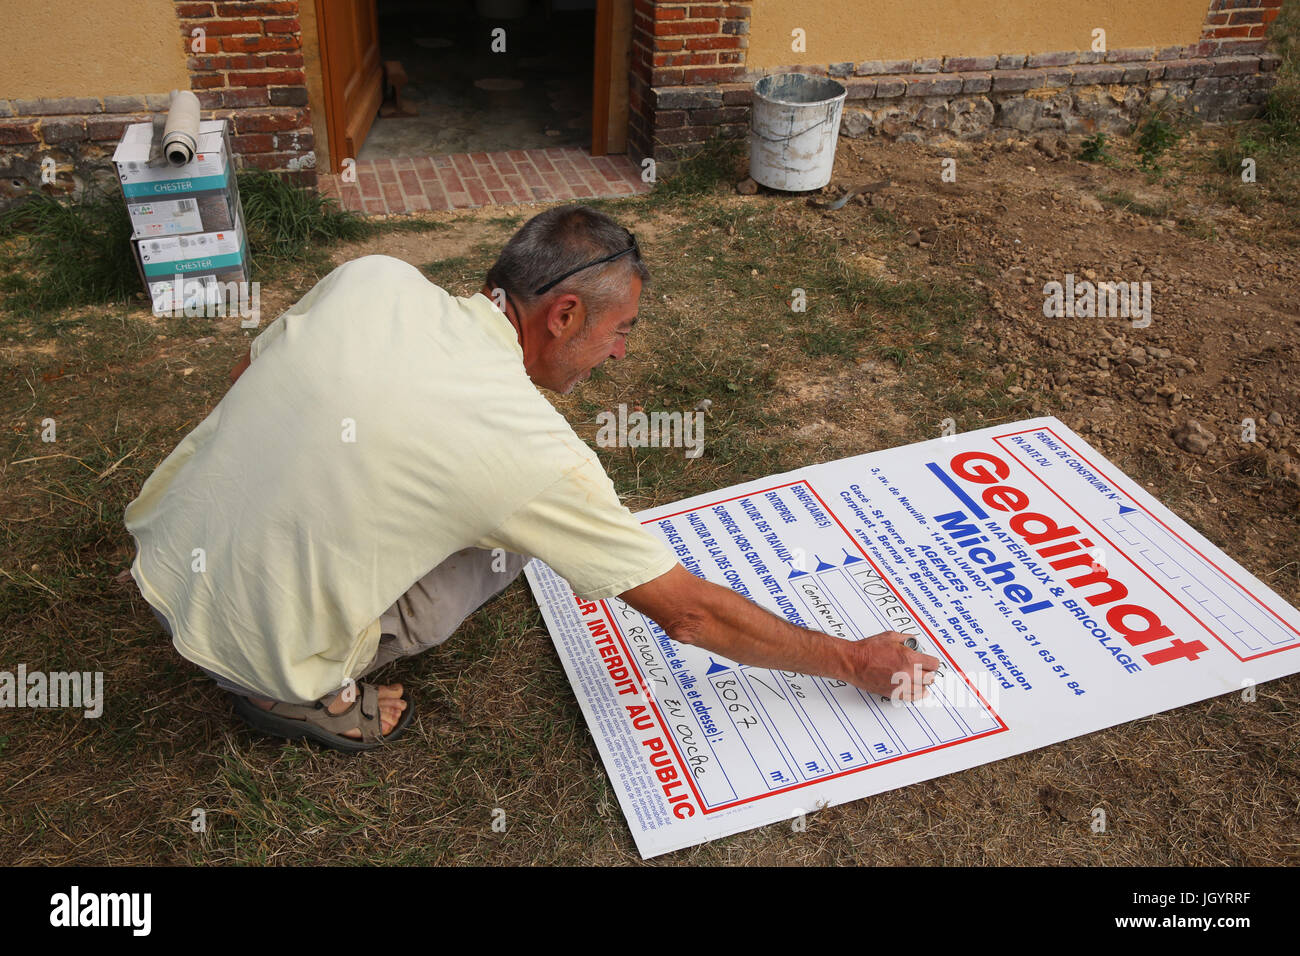 Man filling a notice sign. France. - Stock Image